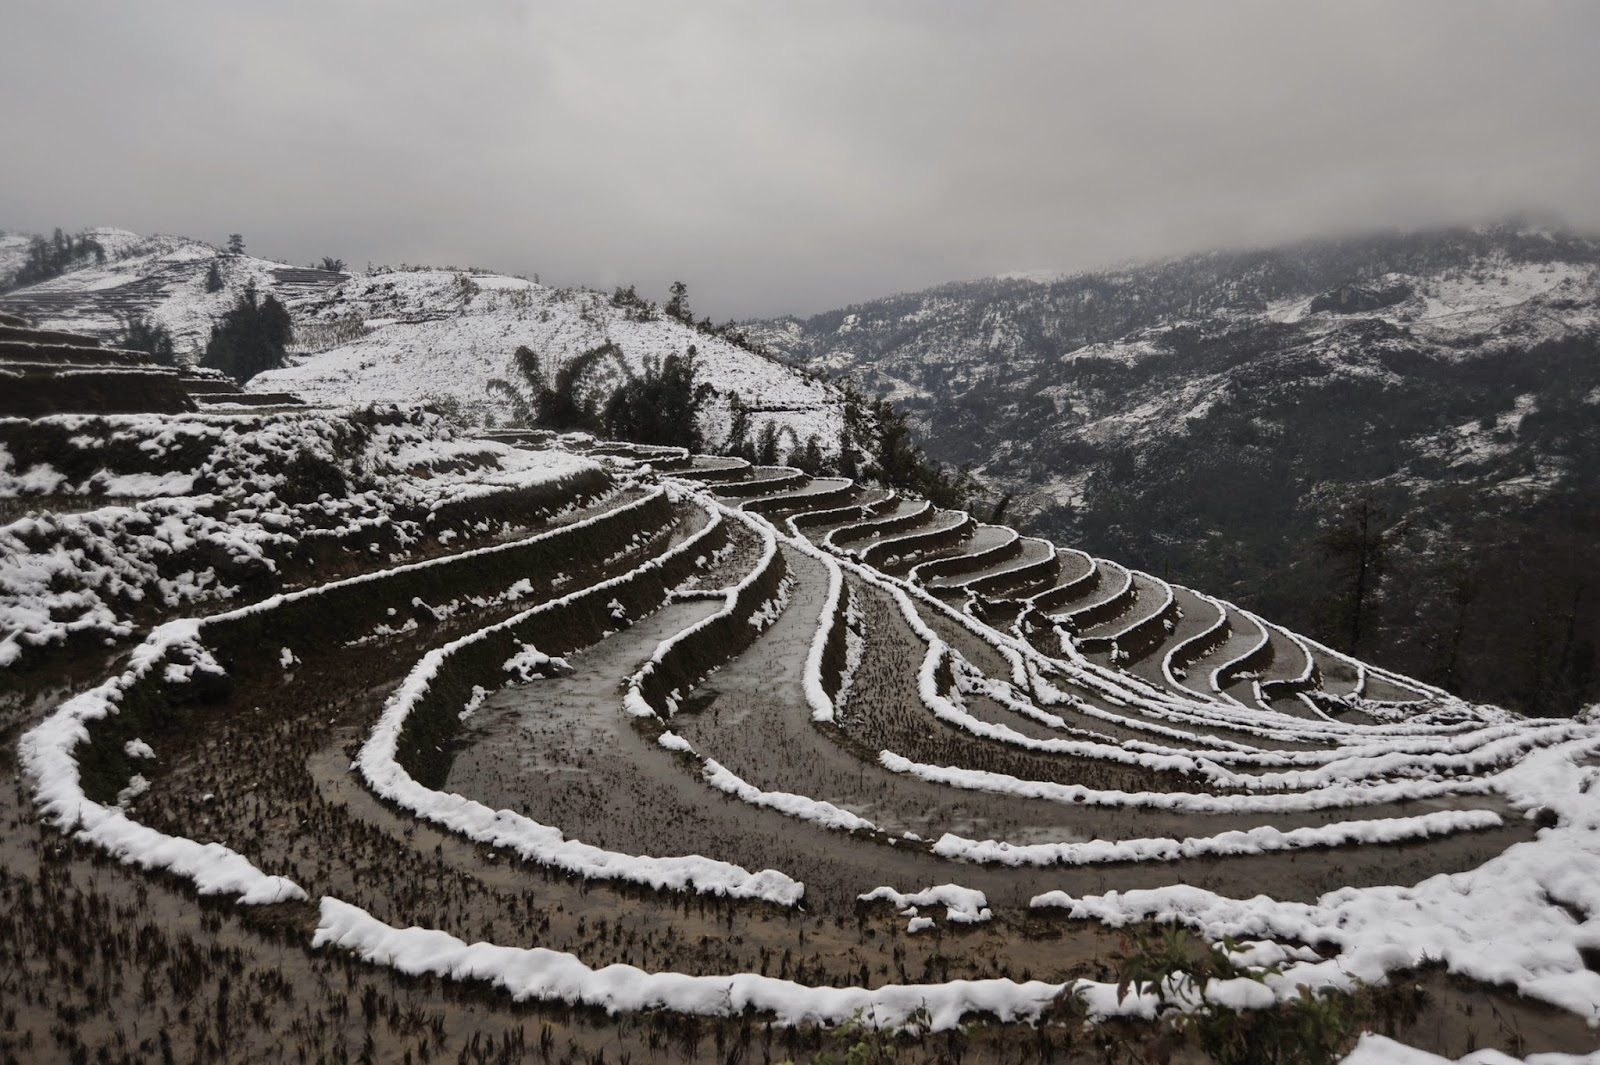 Sapa in the winter with snow